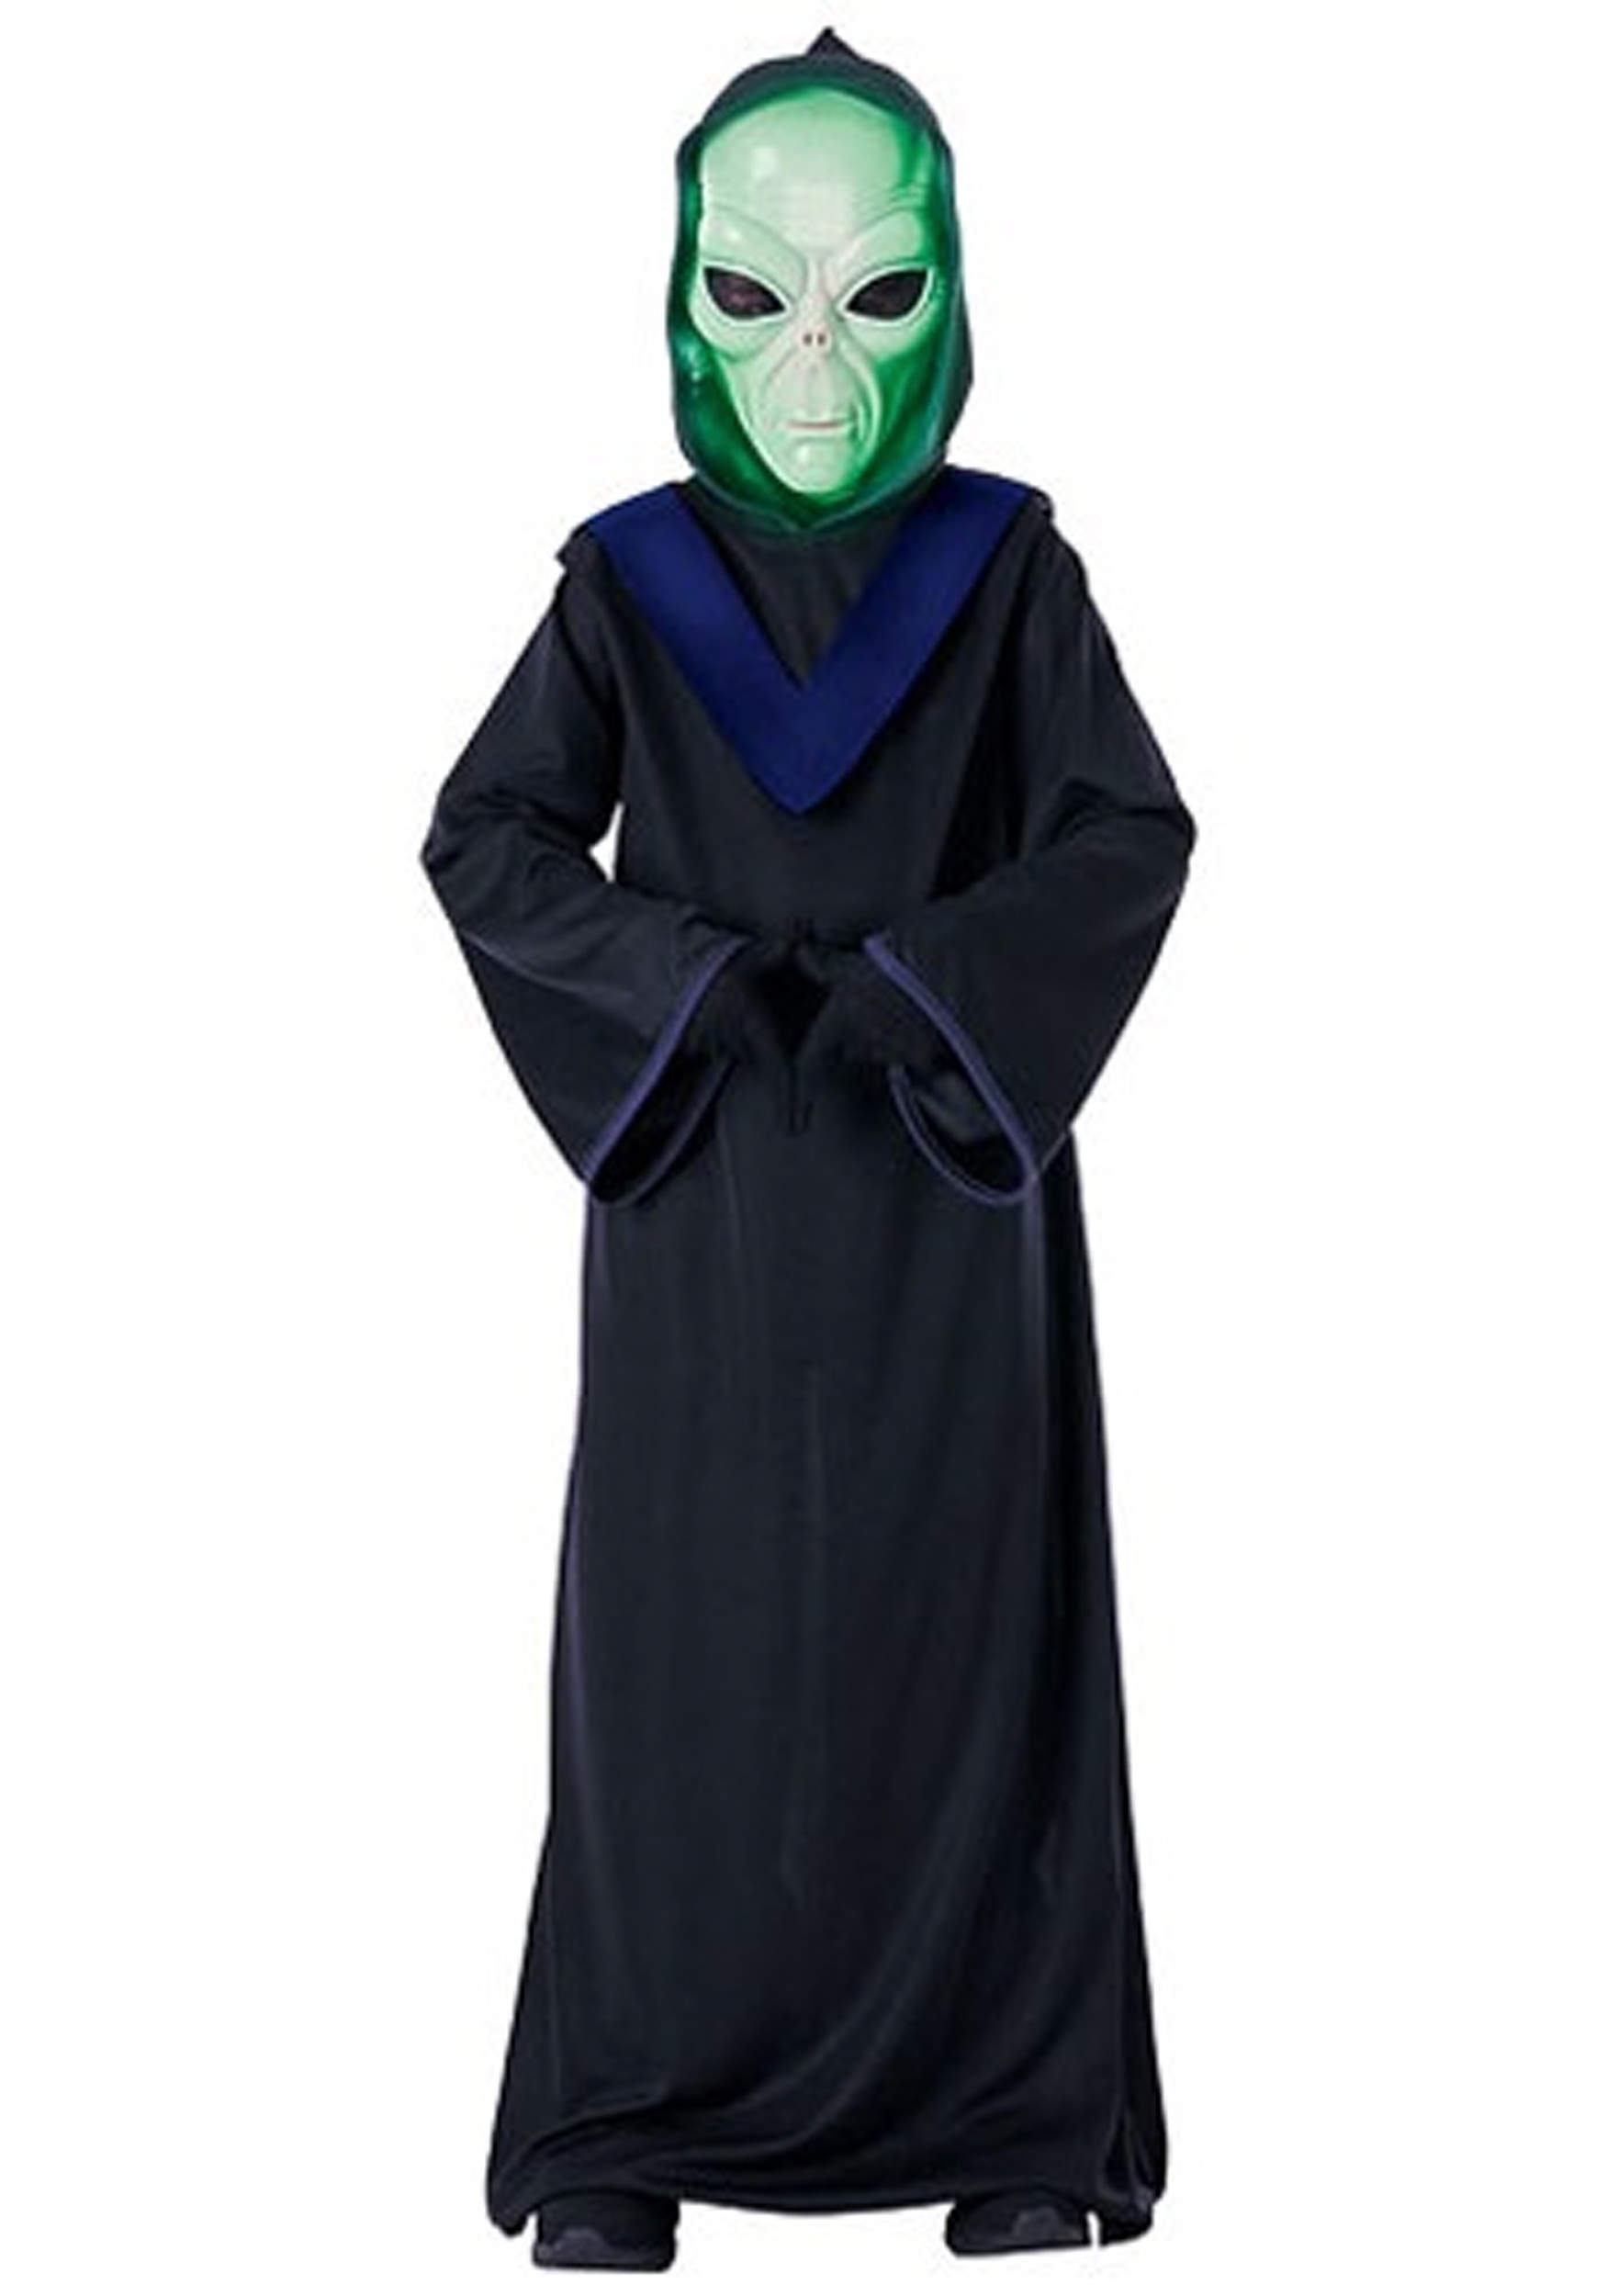 Kids Alien Costume  sc 1 st  Halloween Costumes & Space Alien Costumes for Adults u0026 Kids - HalloweenCostumes.com